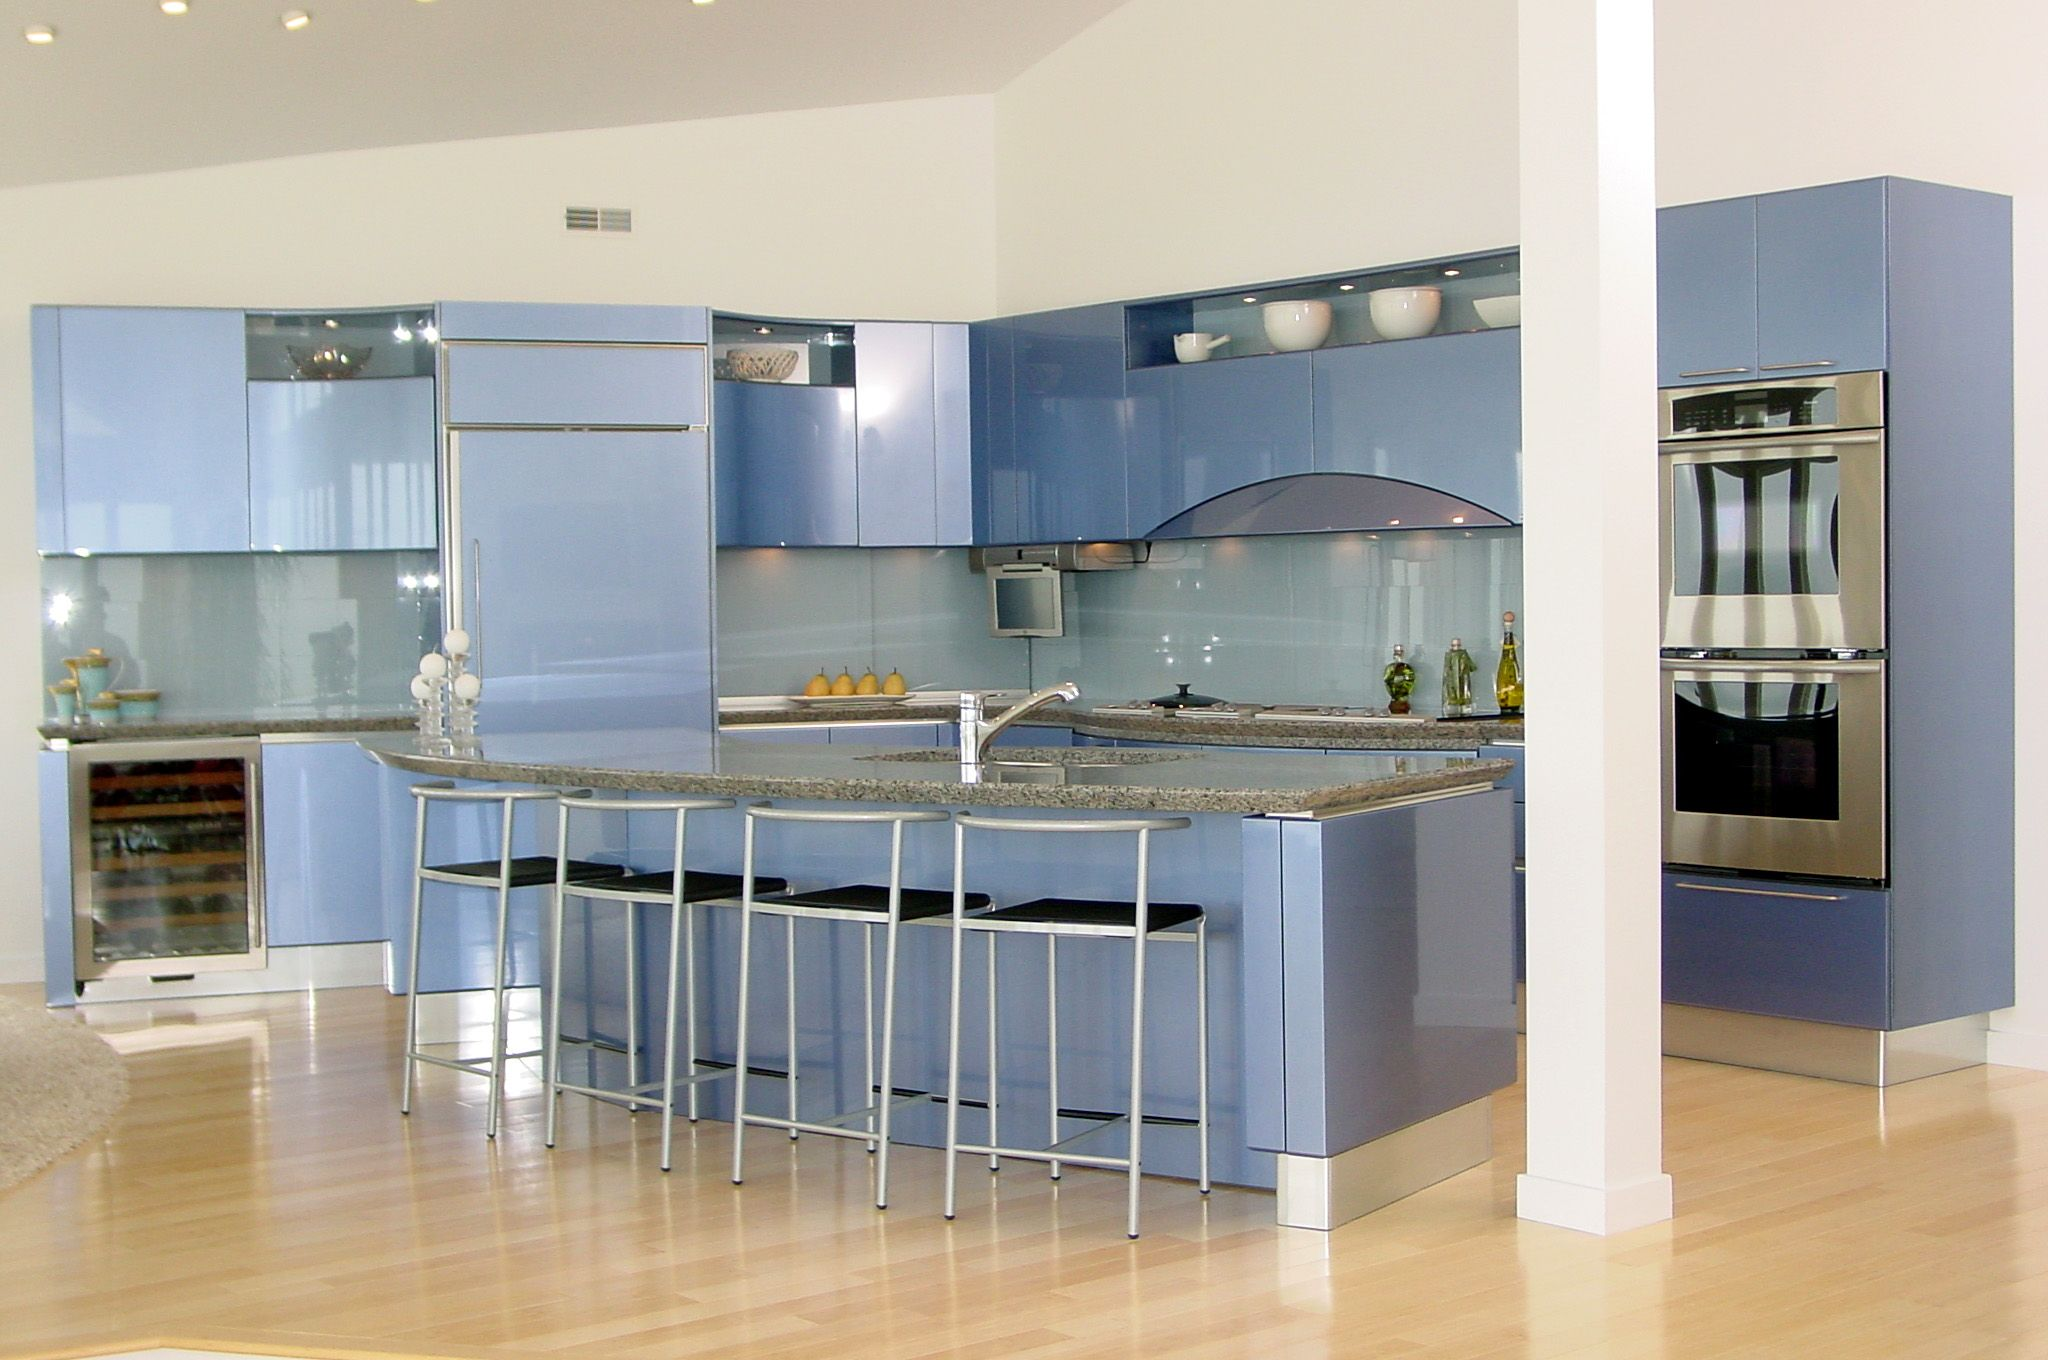 Blue Ola Kitchen Cabinets By Snaidero USA. Italian Modern Kitchen Design.